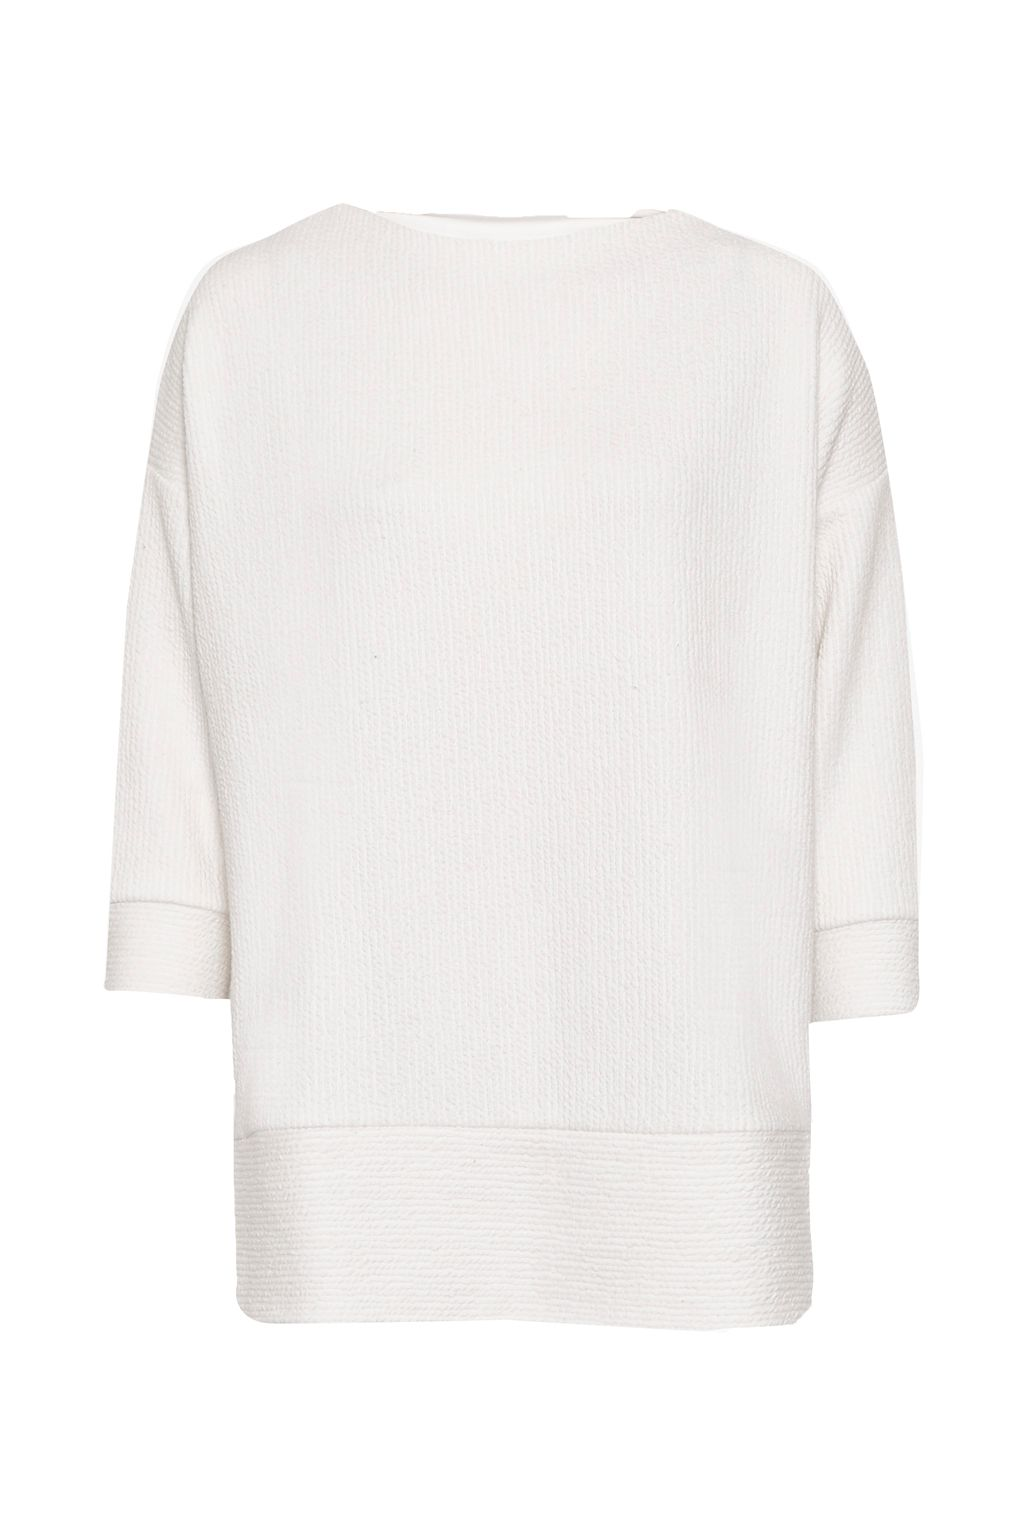 Great Plains Wiggle Rib Oversized Top, White